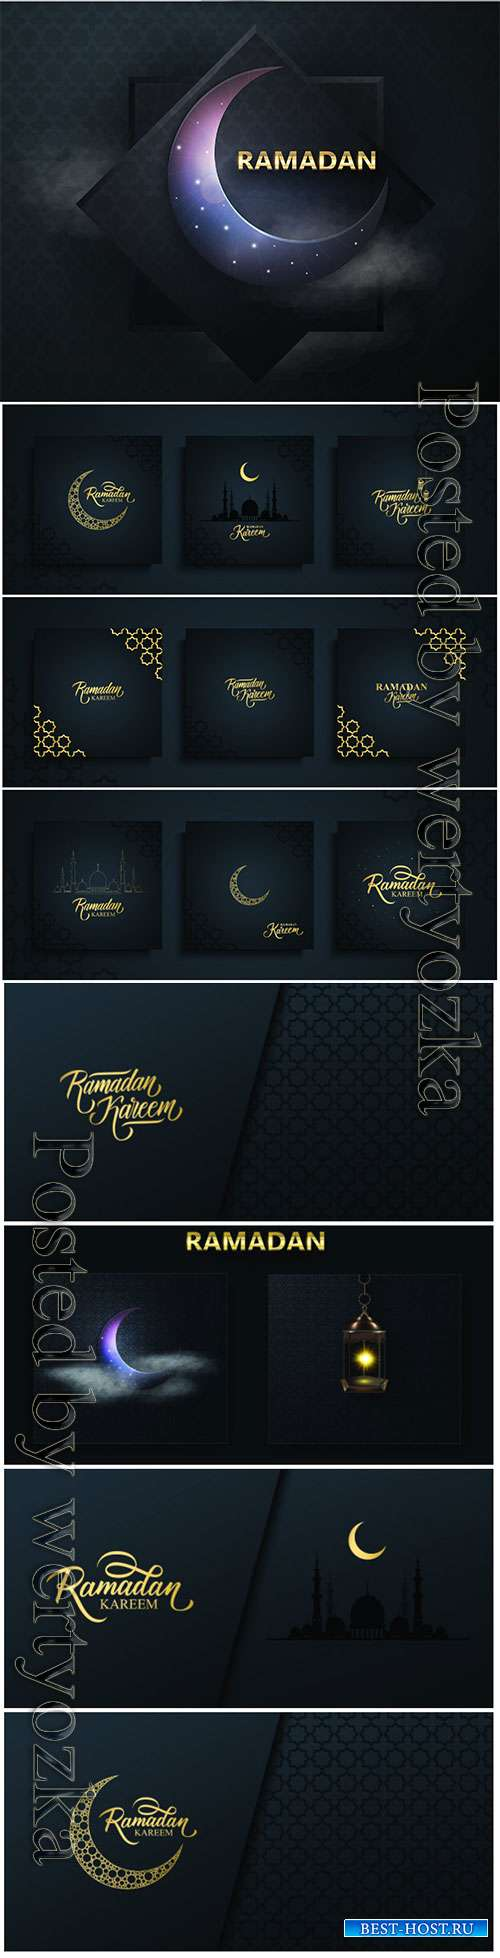 Ramadan Kareem vector background, Eid mubarak greeting card